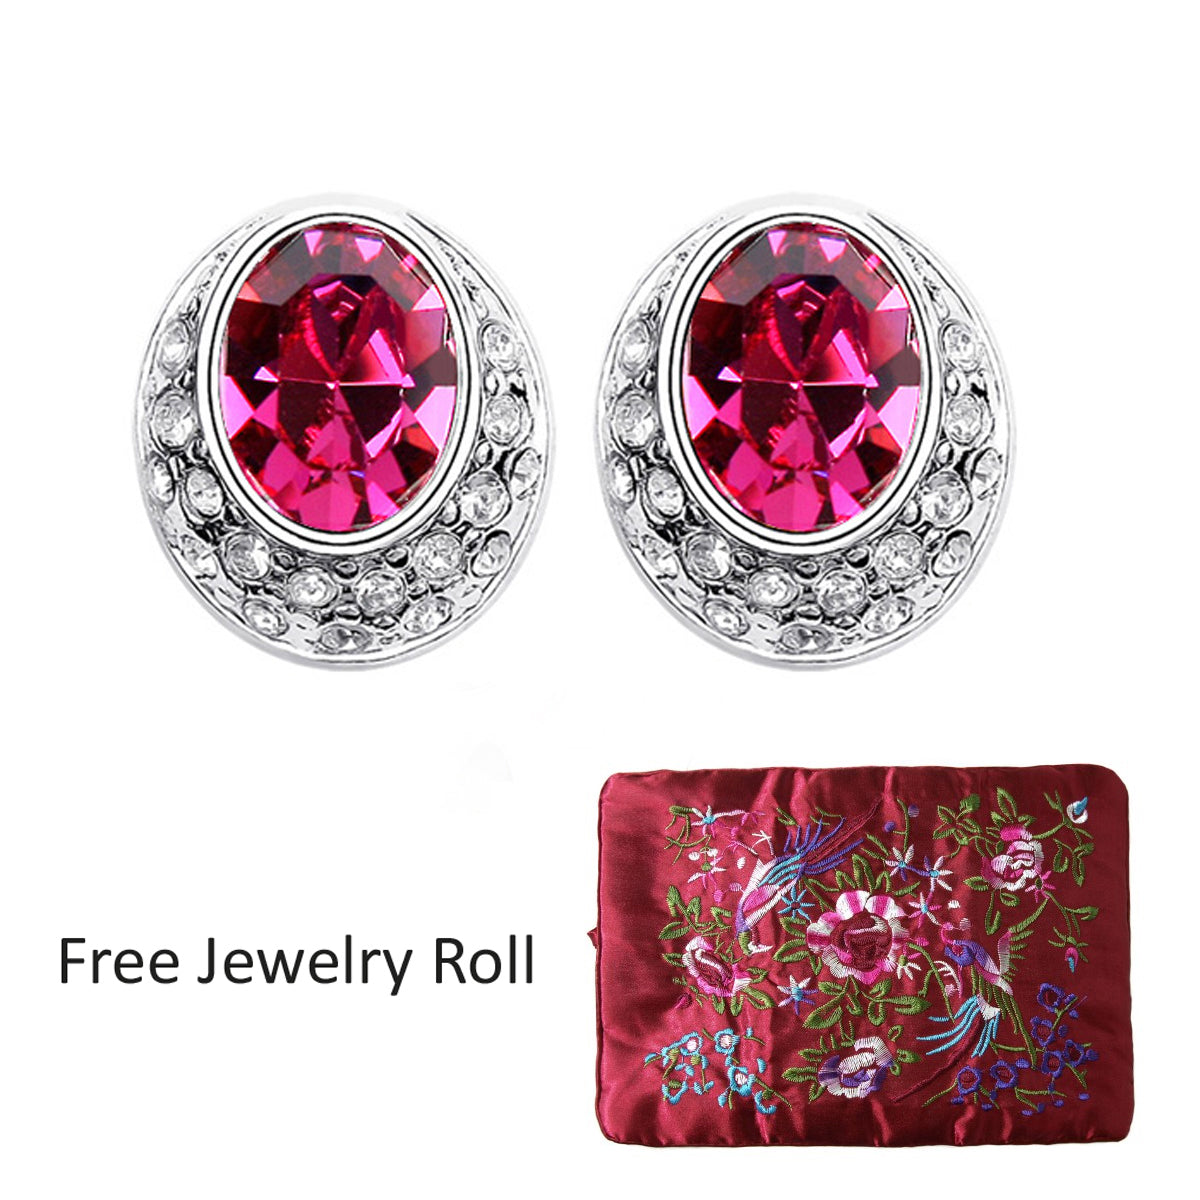 Magenta Swarovski Elements Crystal Earrings + Large Burgundy Silk Embroidered Jewelry Roll